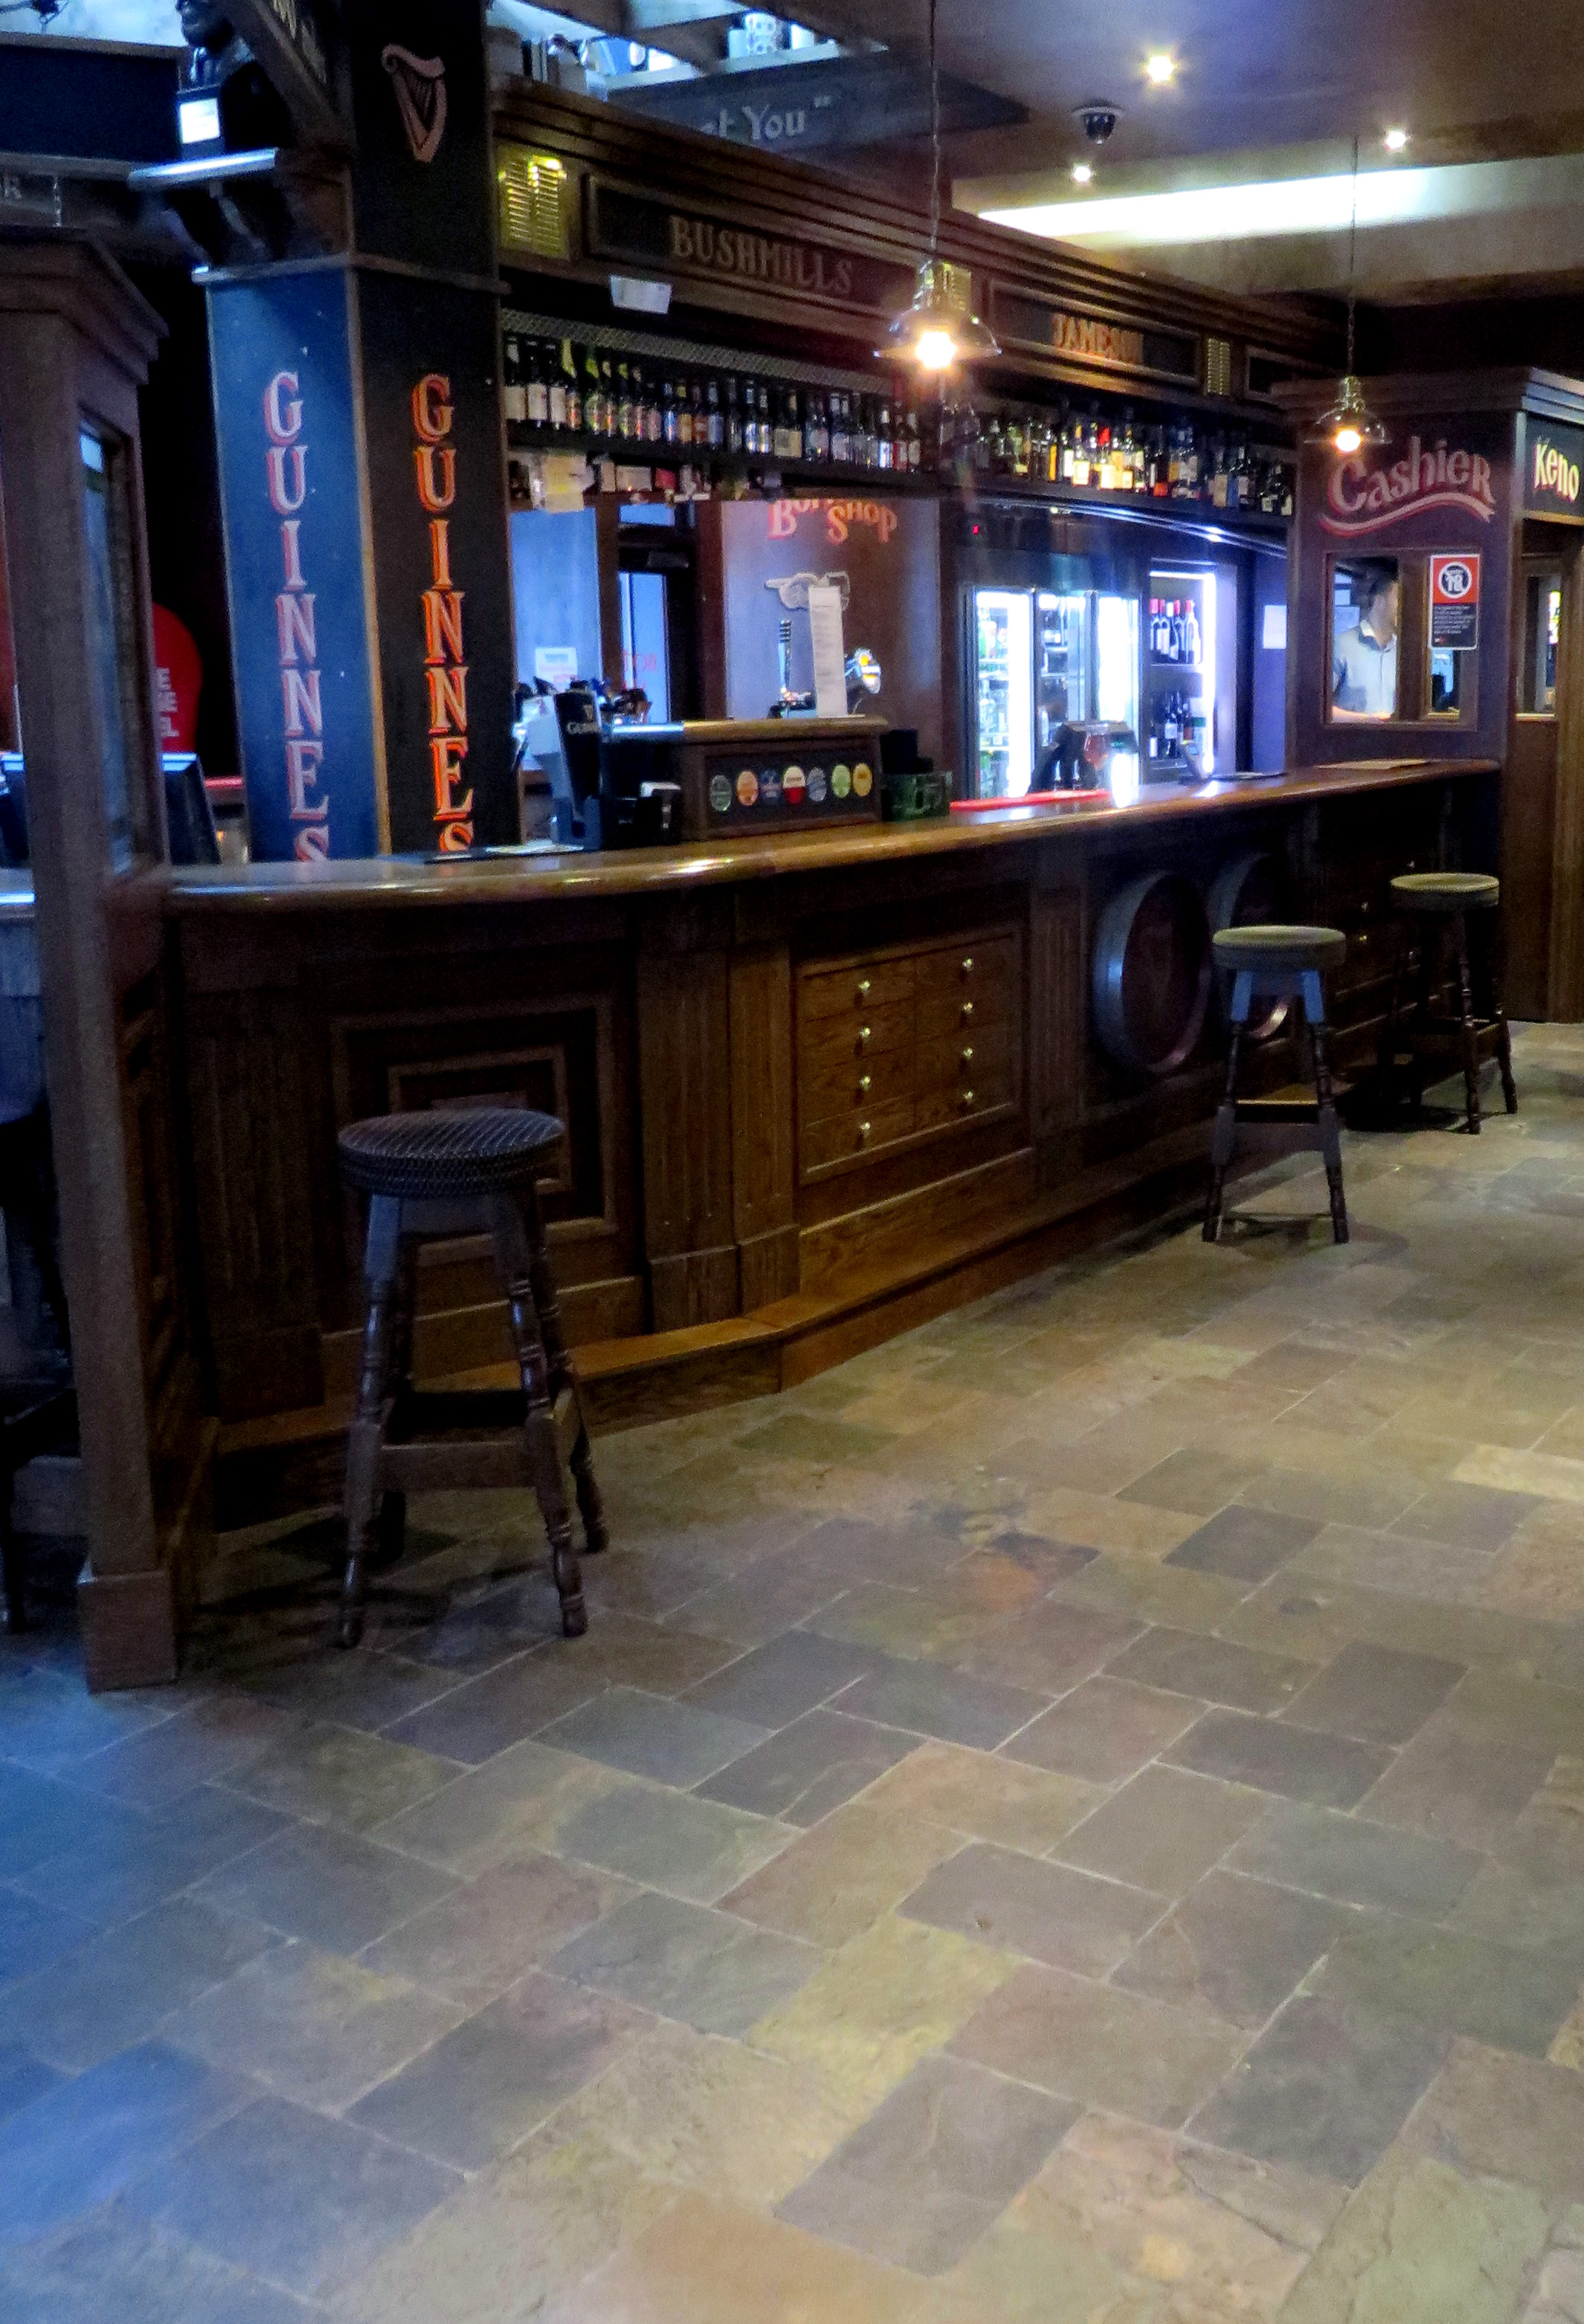 Unsealed Rajah slate on the floor of the bar